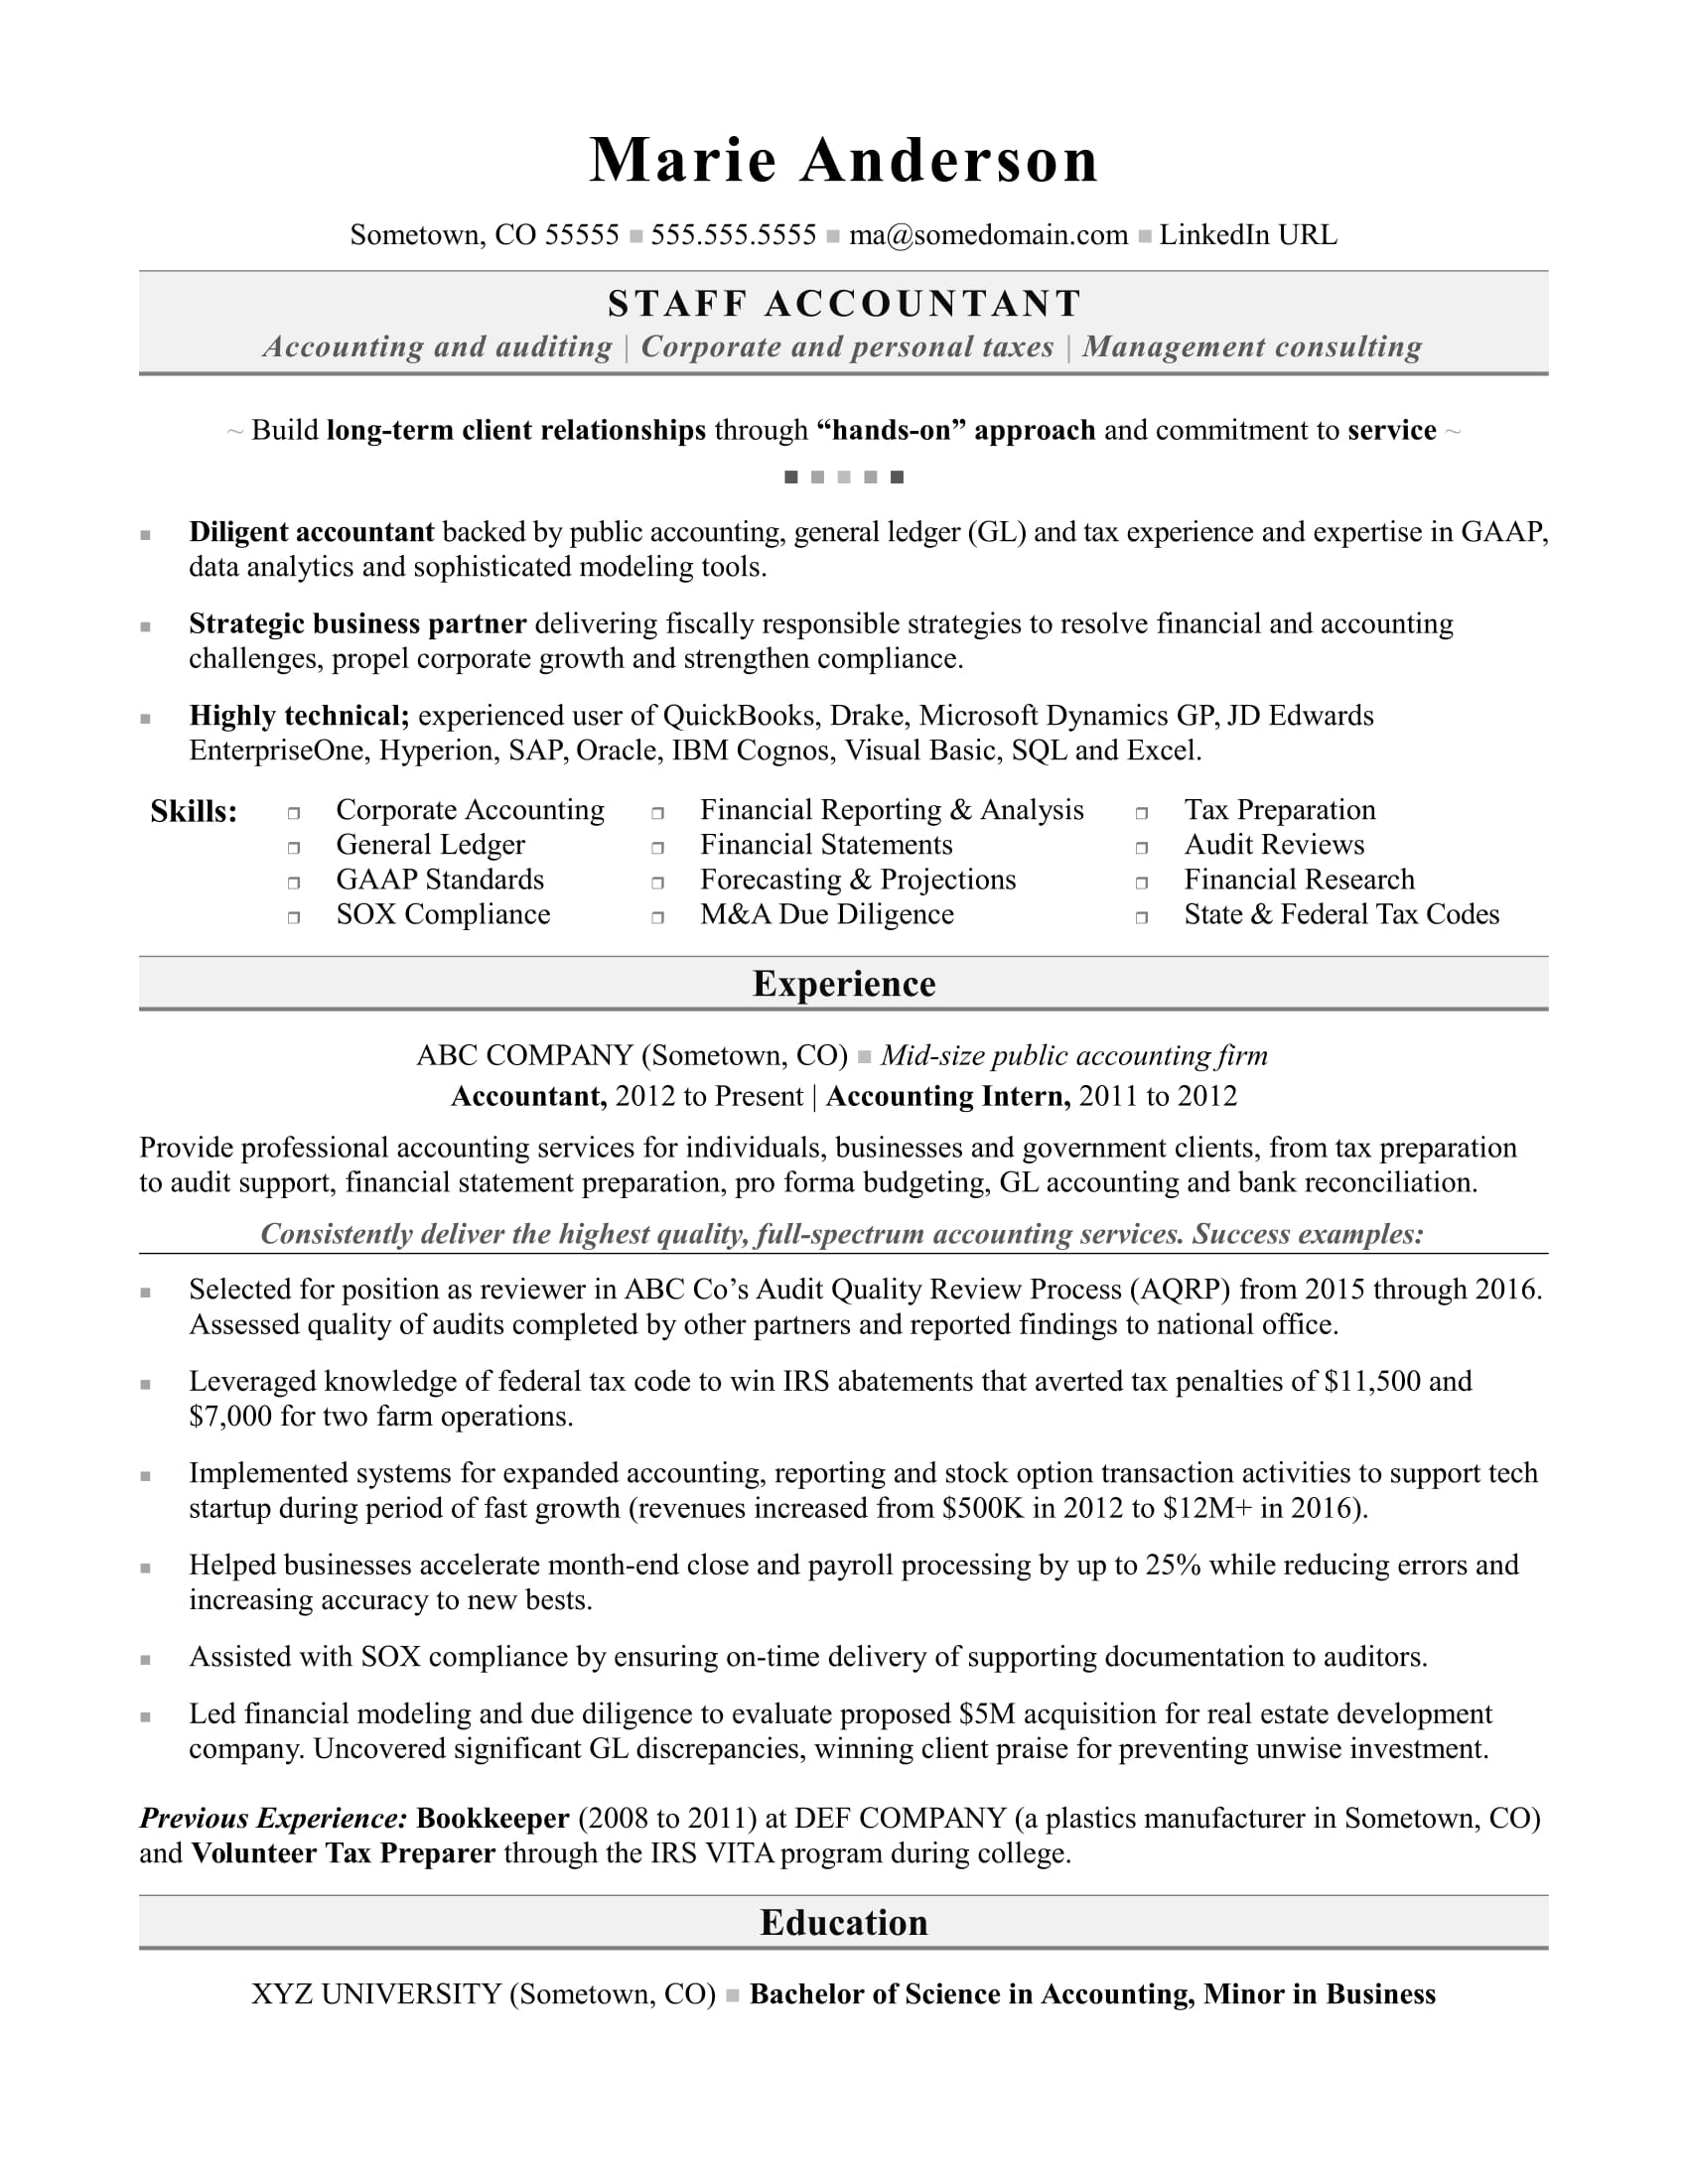 accounting resume sample monster work experience accountant of medical assistant leasing Resume Work Experience Accountant Resume